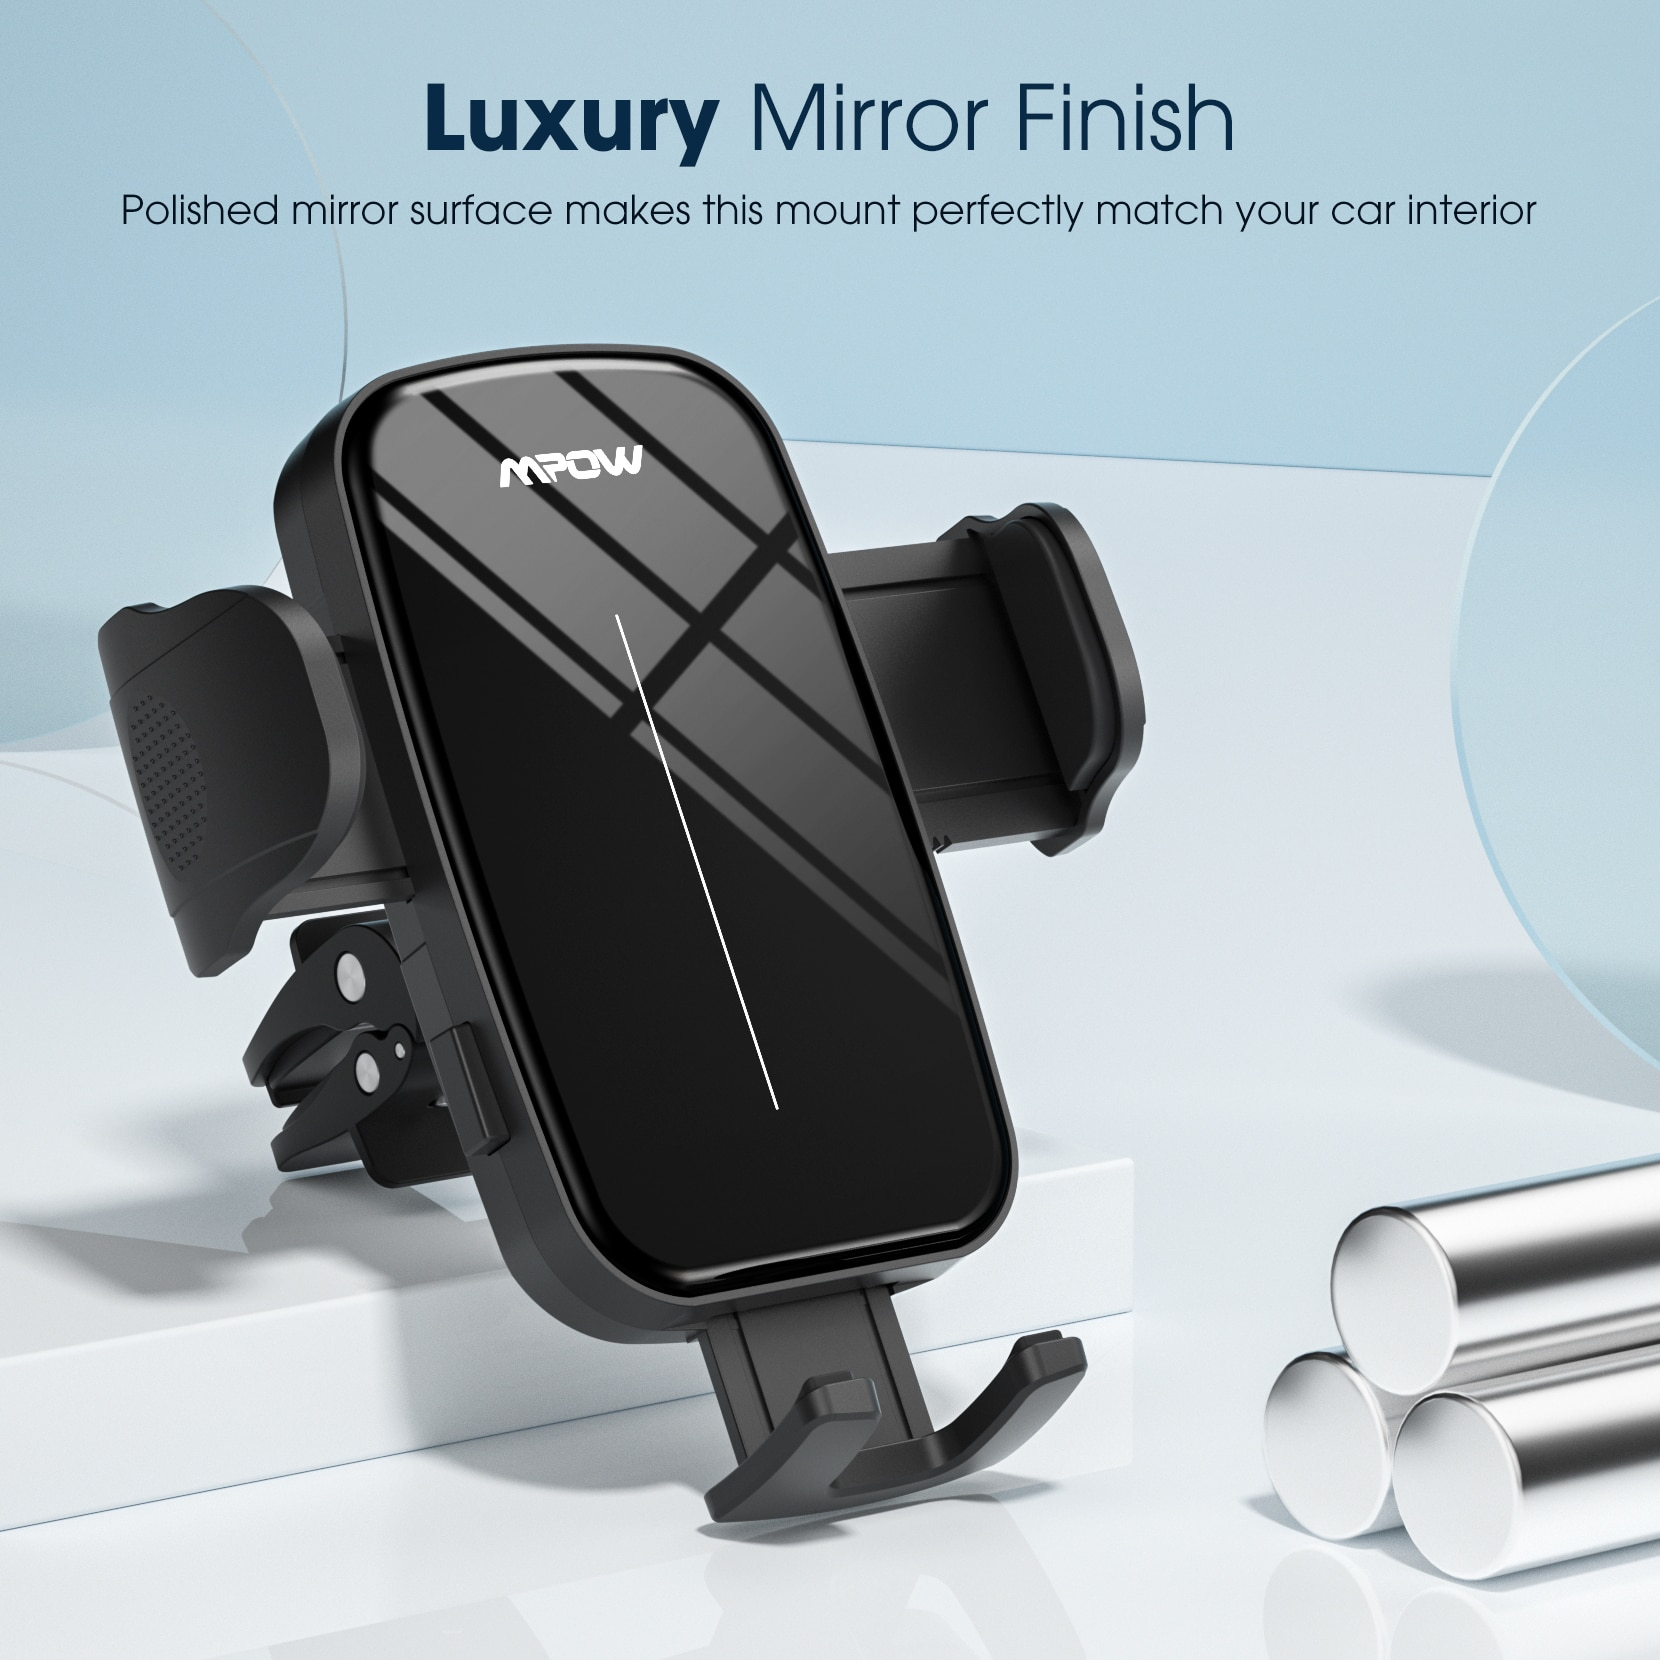 H01bf9e8b60e64961bd3cb0a794fc5528H - Mpow CA174 Universal Car Phone Mount Air Vent Car Phone Holder with Stable Clip Compatible with iPhone 12 11 Pro Max XS 8 Galaxy